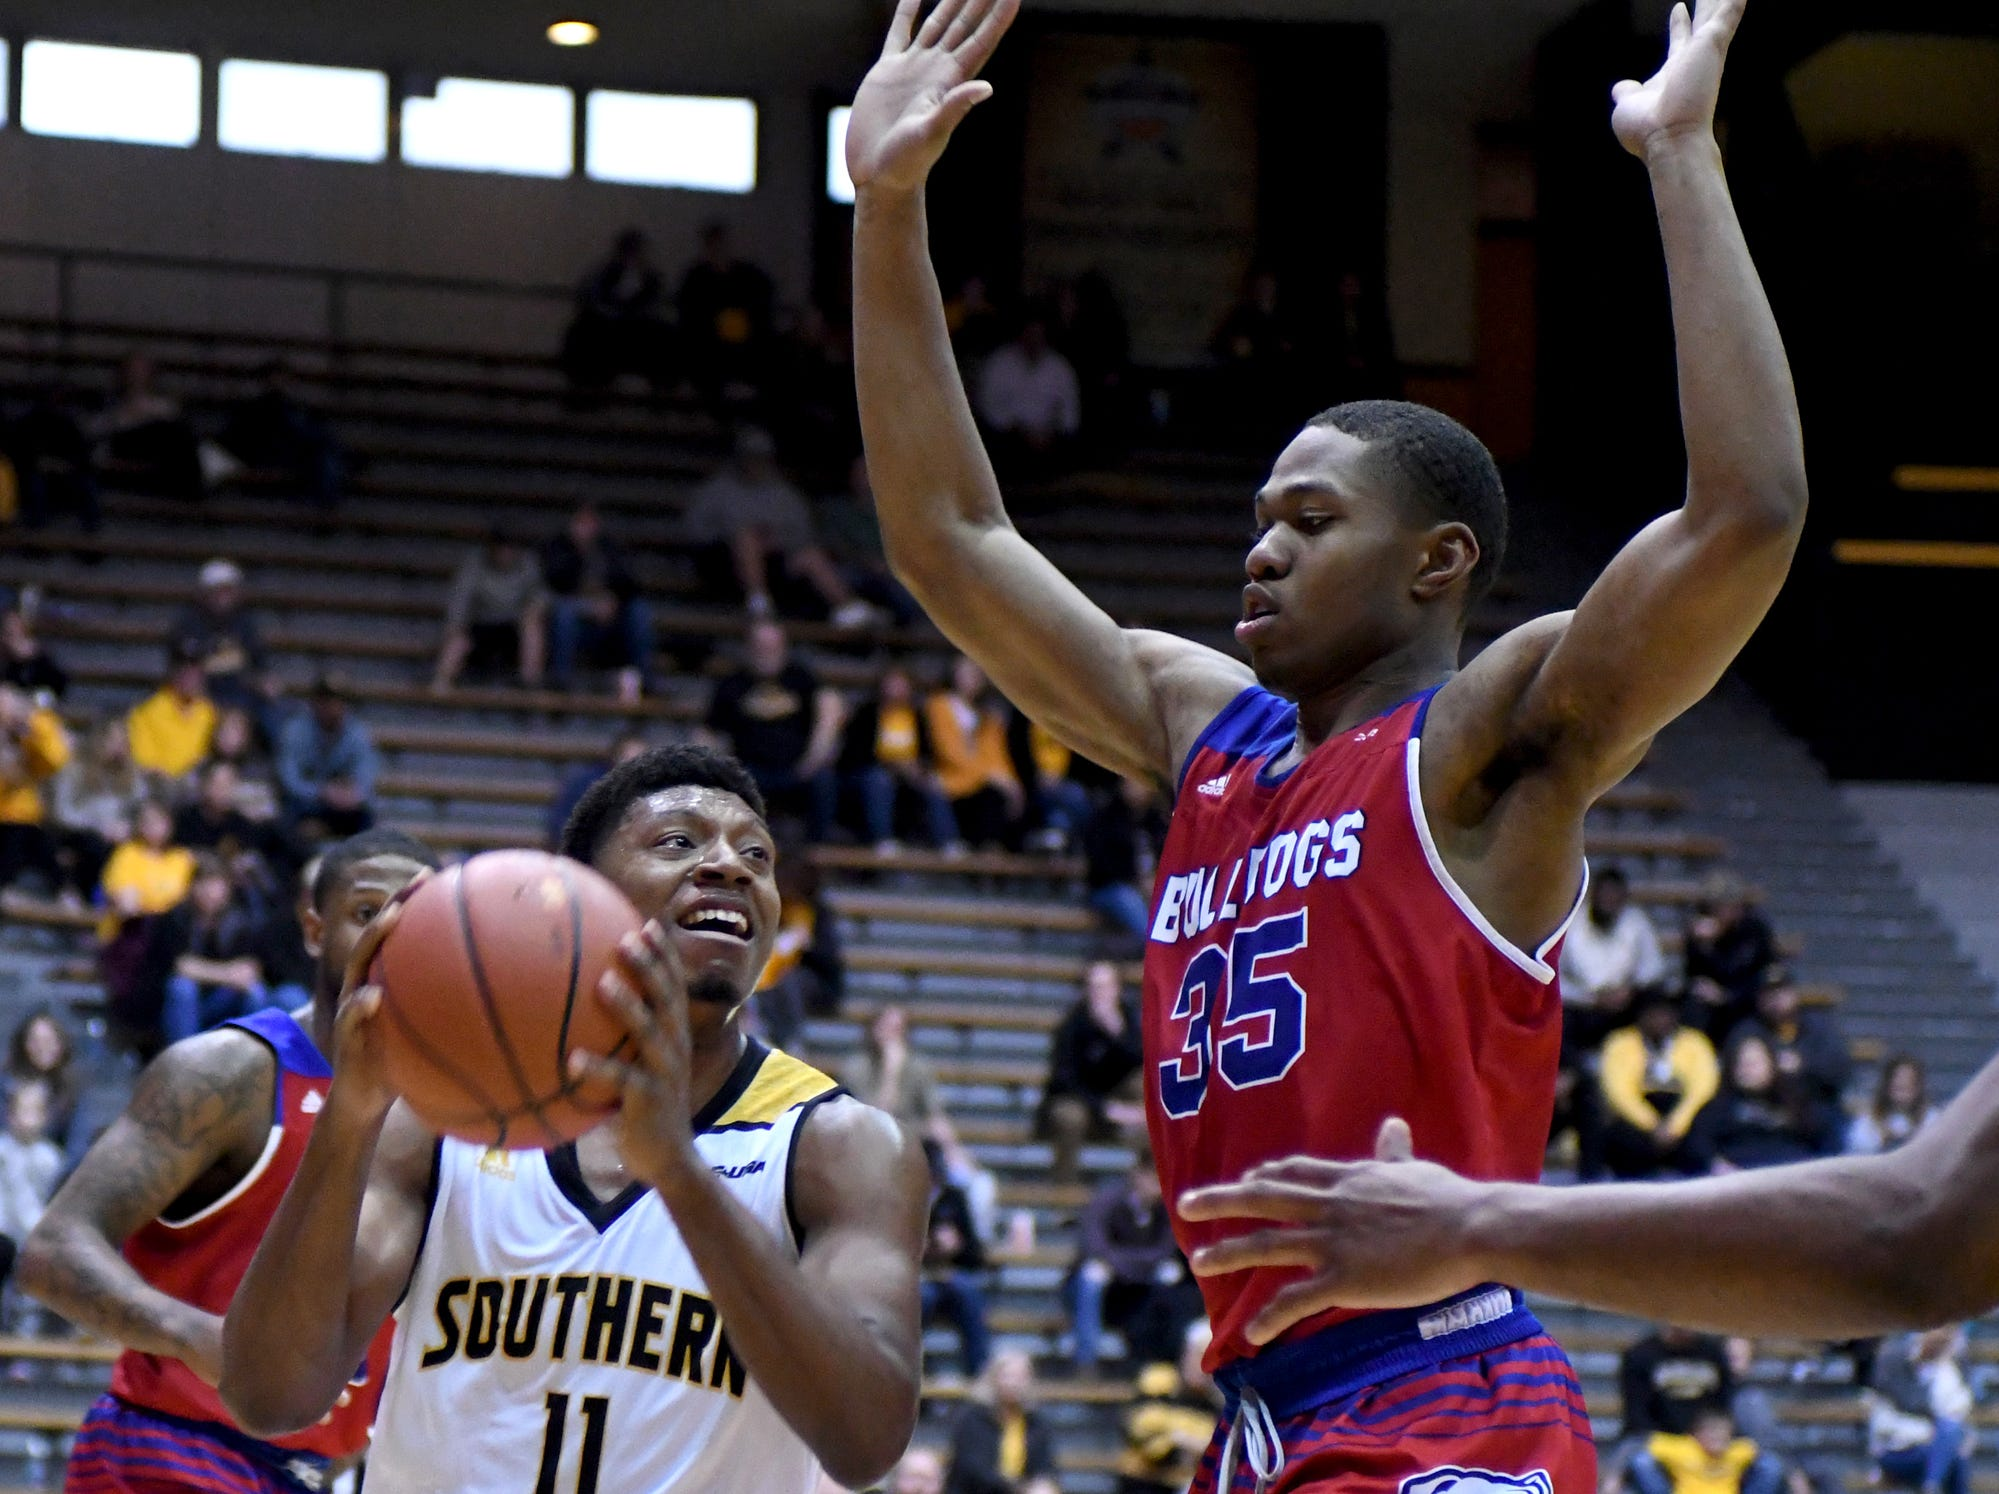 Southern Miss guard Tyree Griffin shoots for the basket in a game against Louisiana Tech in Reed Green Coliseum on Saturday, February 9, 2019.